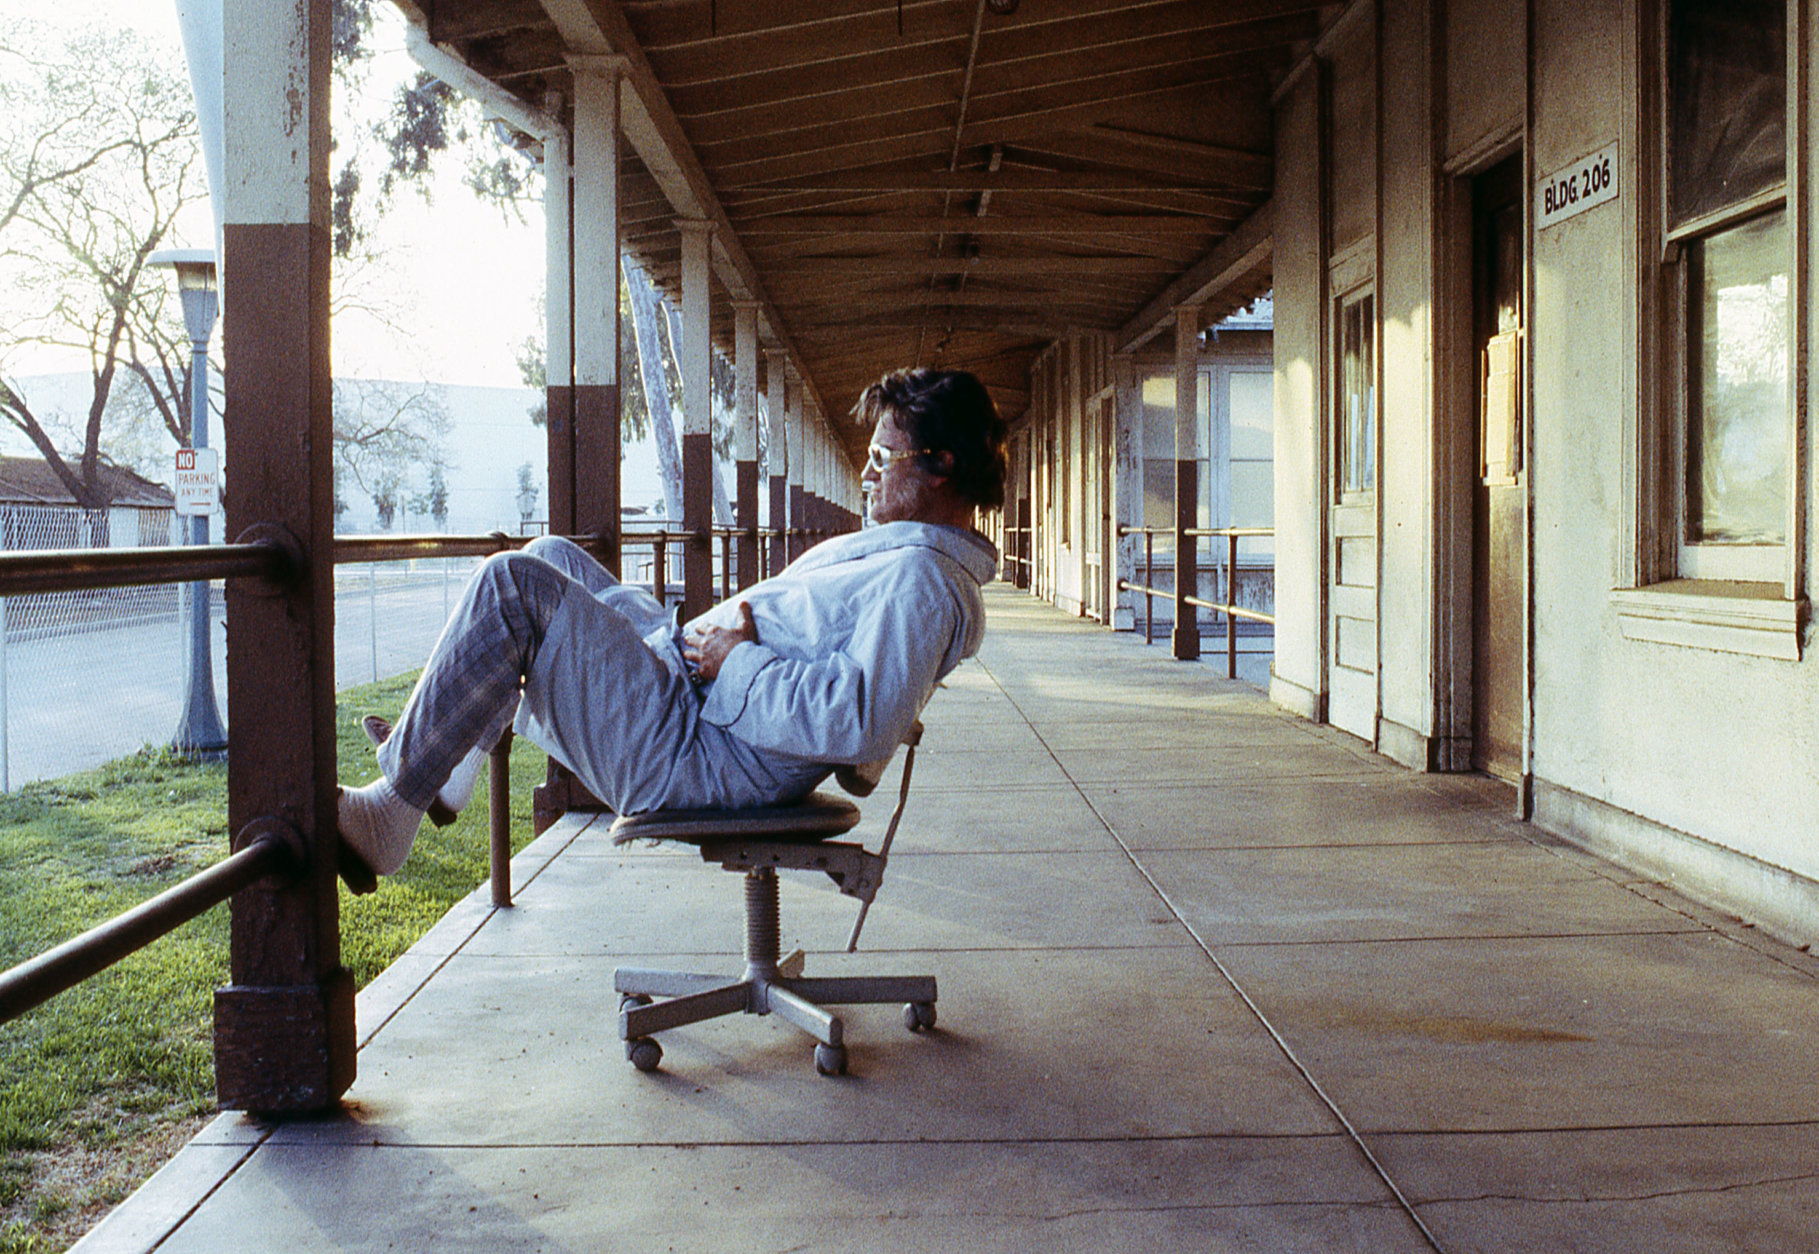 Cult film star Bruce Campbell relaxes between takes on the set of Bubba Ho-tep in his Elvis getup. (Courtesy Silver Sphere Productions)